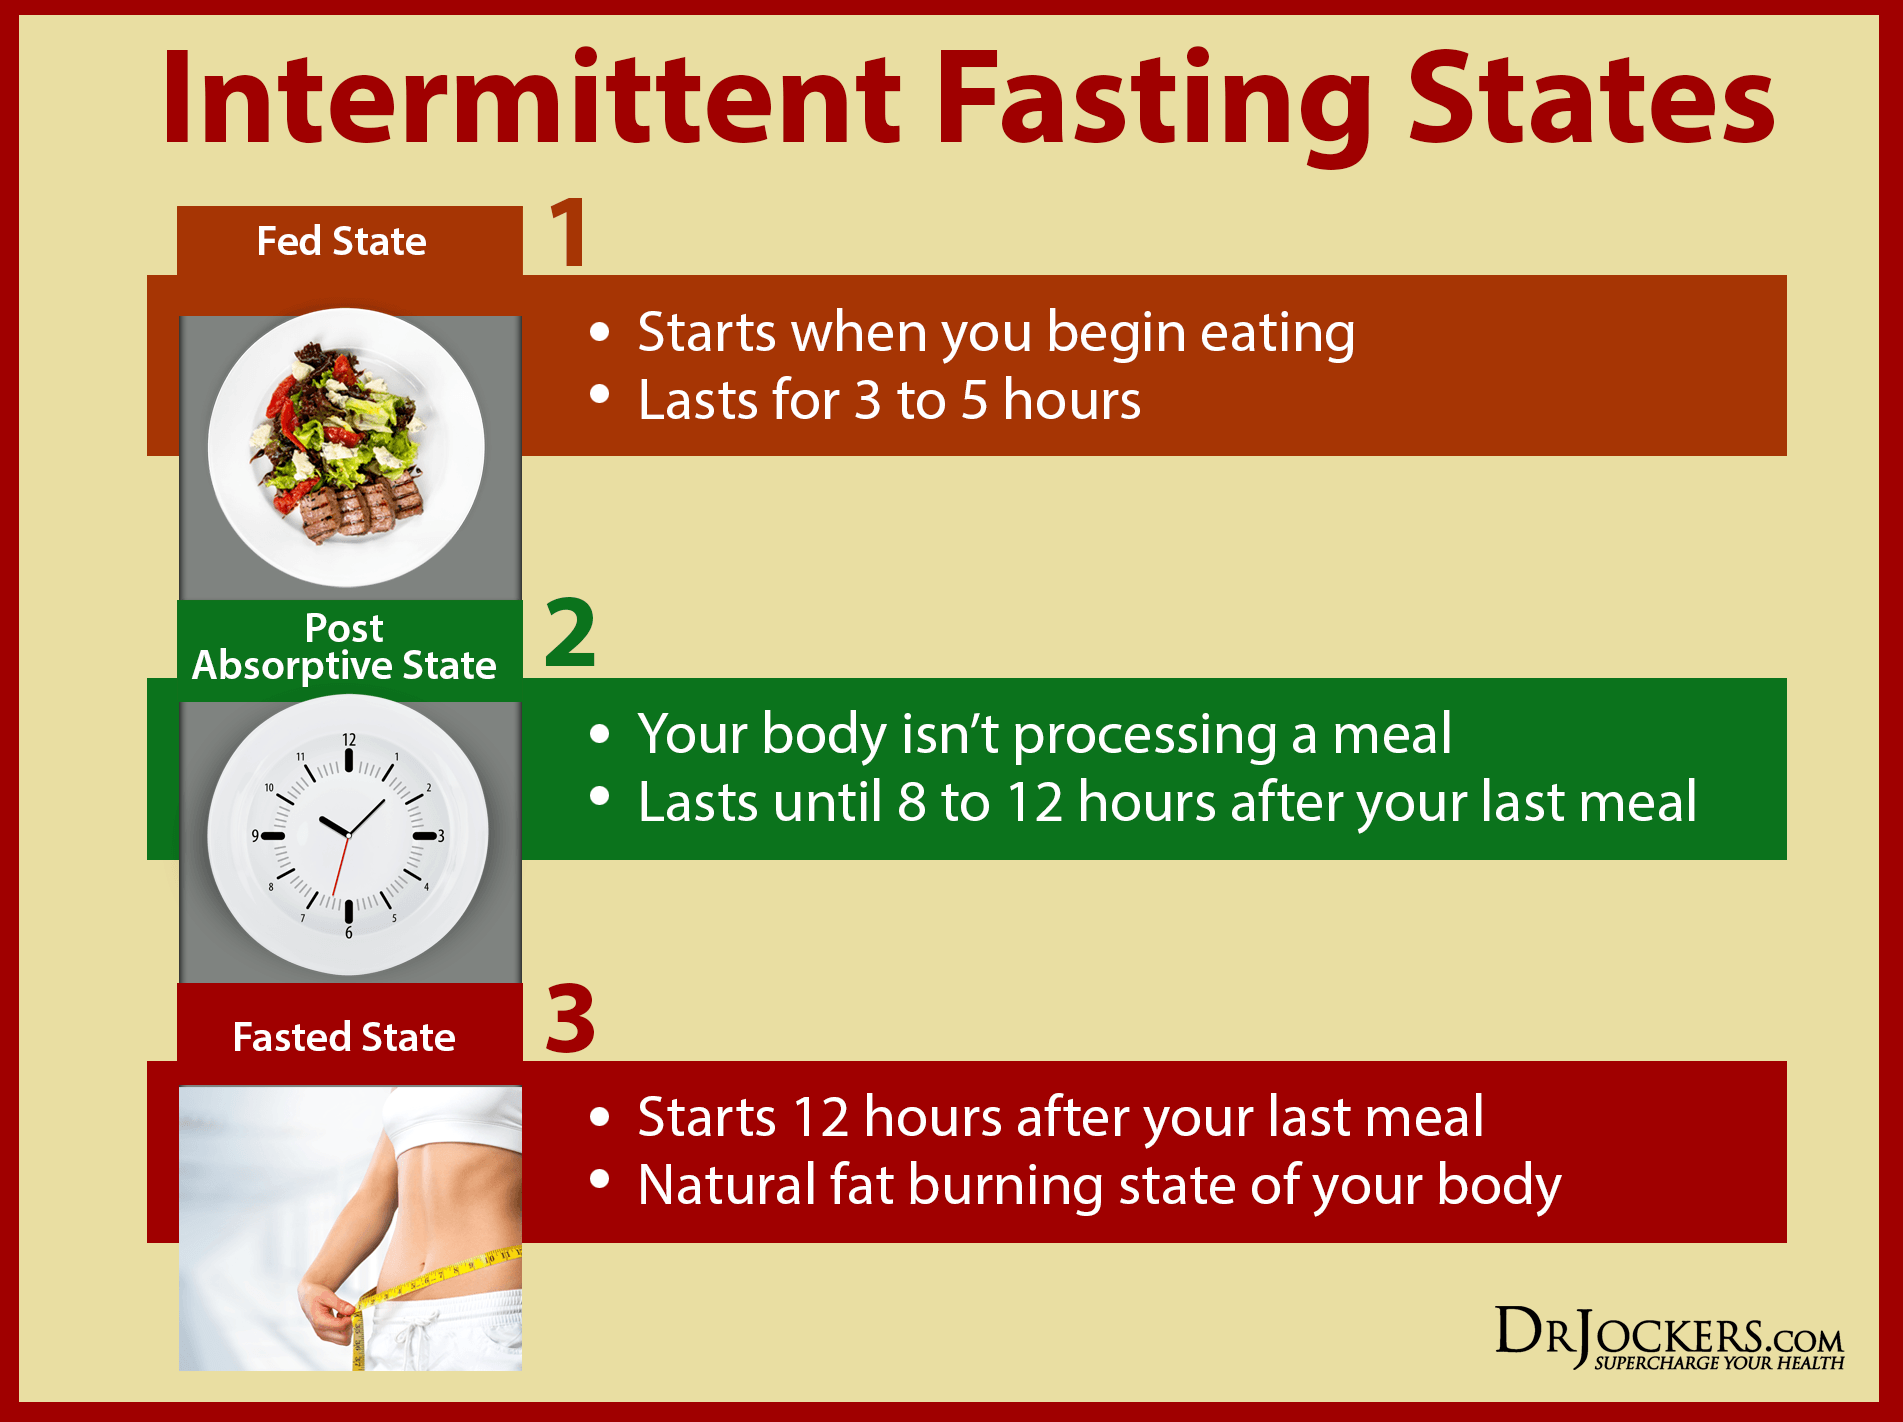 Weight loss through intermittent fasting is safe and effective ...